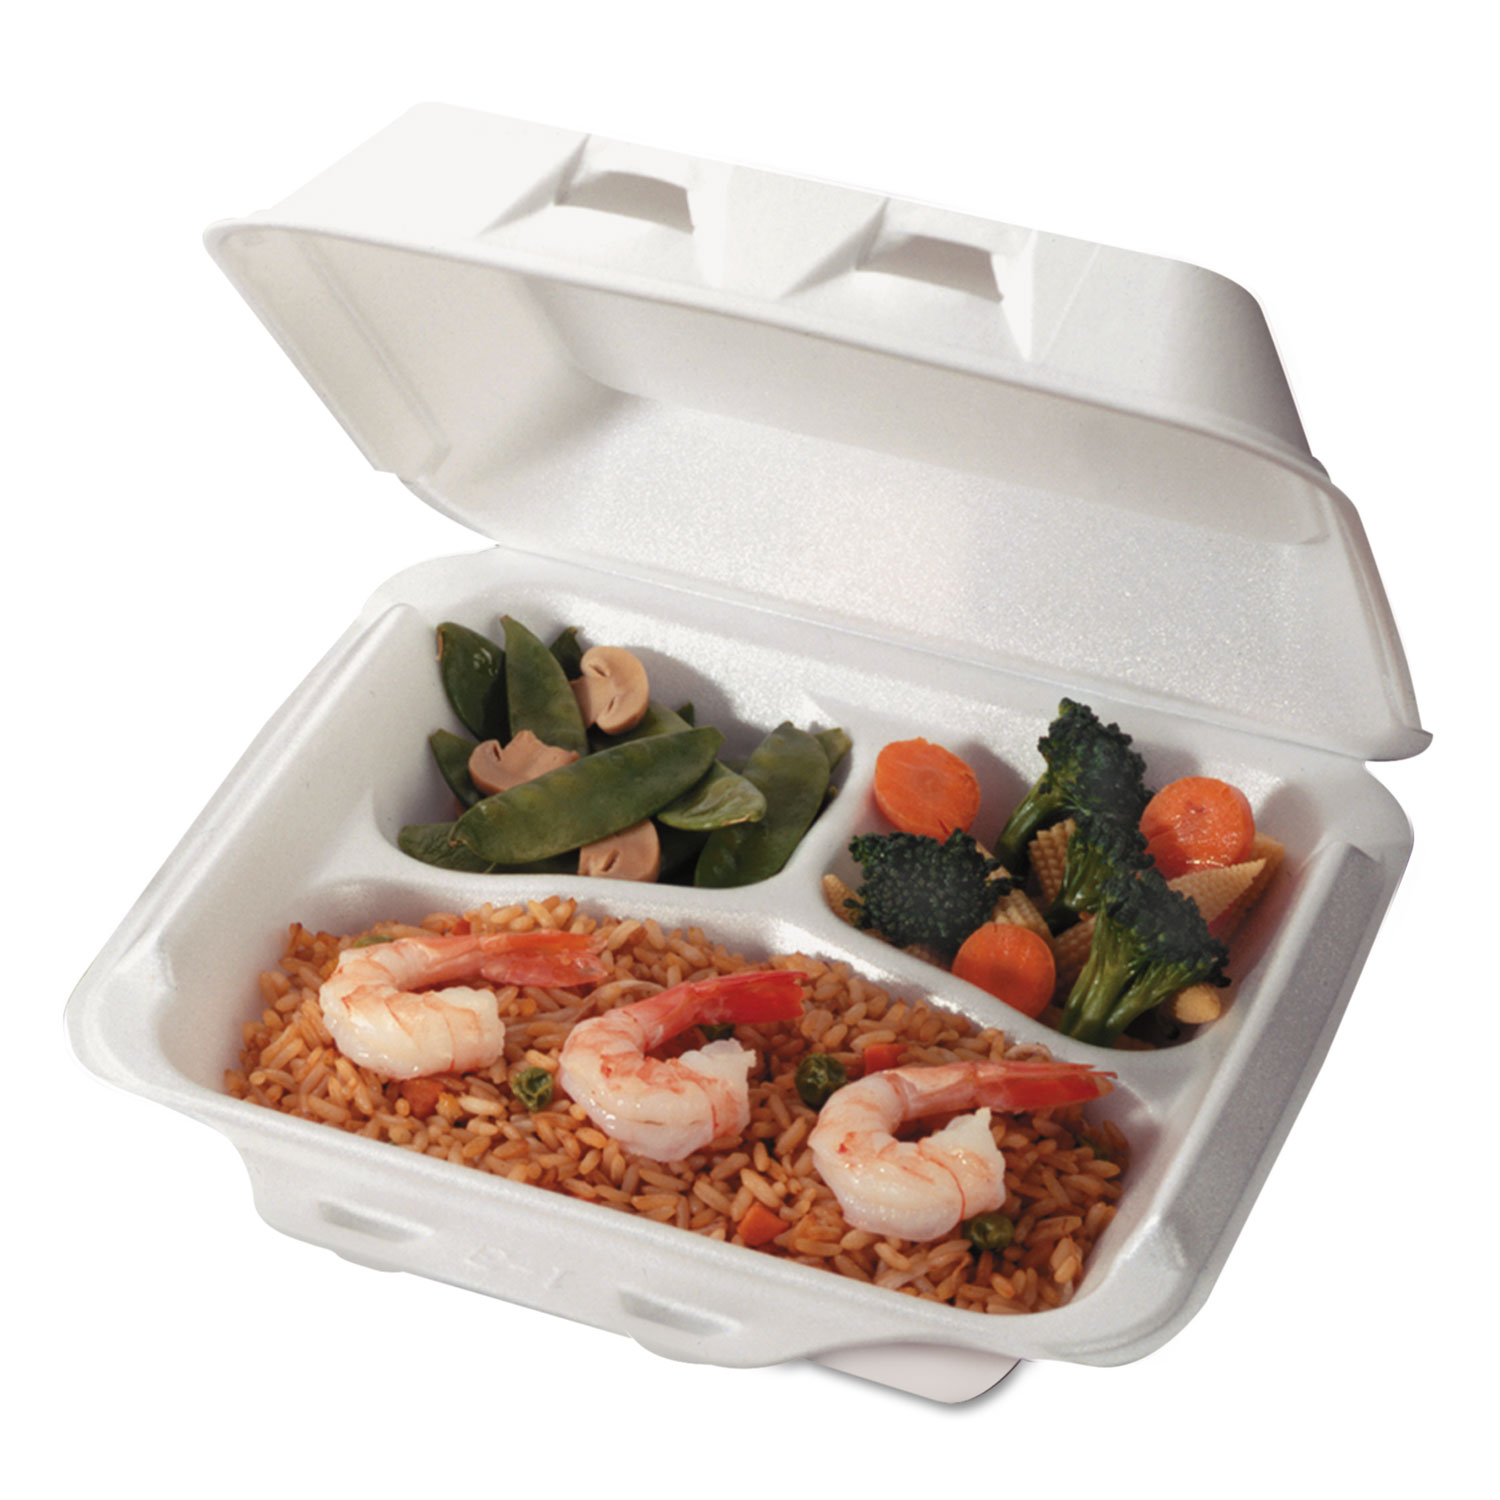 Foam Hinged Lid Containers, White, 7 1/2 x 8 x 2 5/8, 3-Compartment, 150/Carton